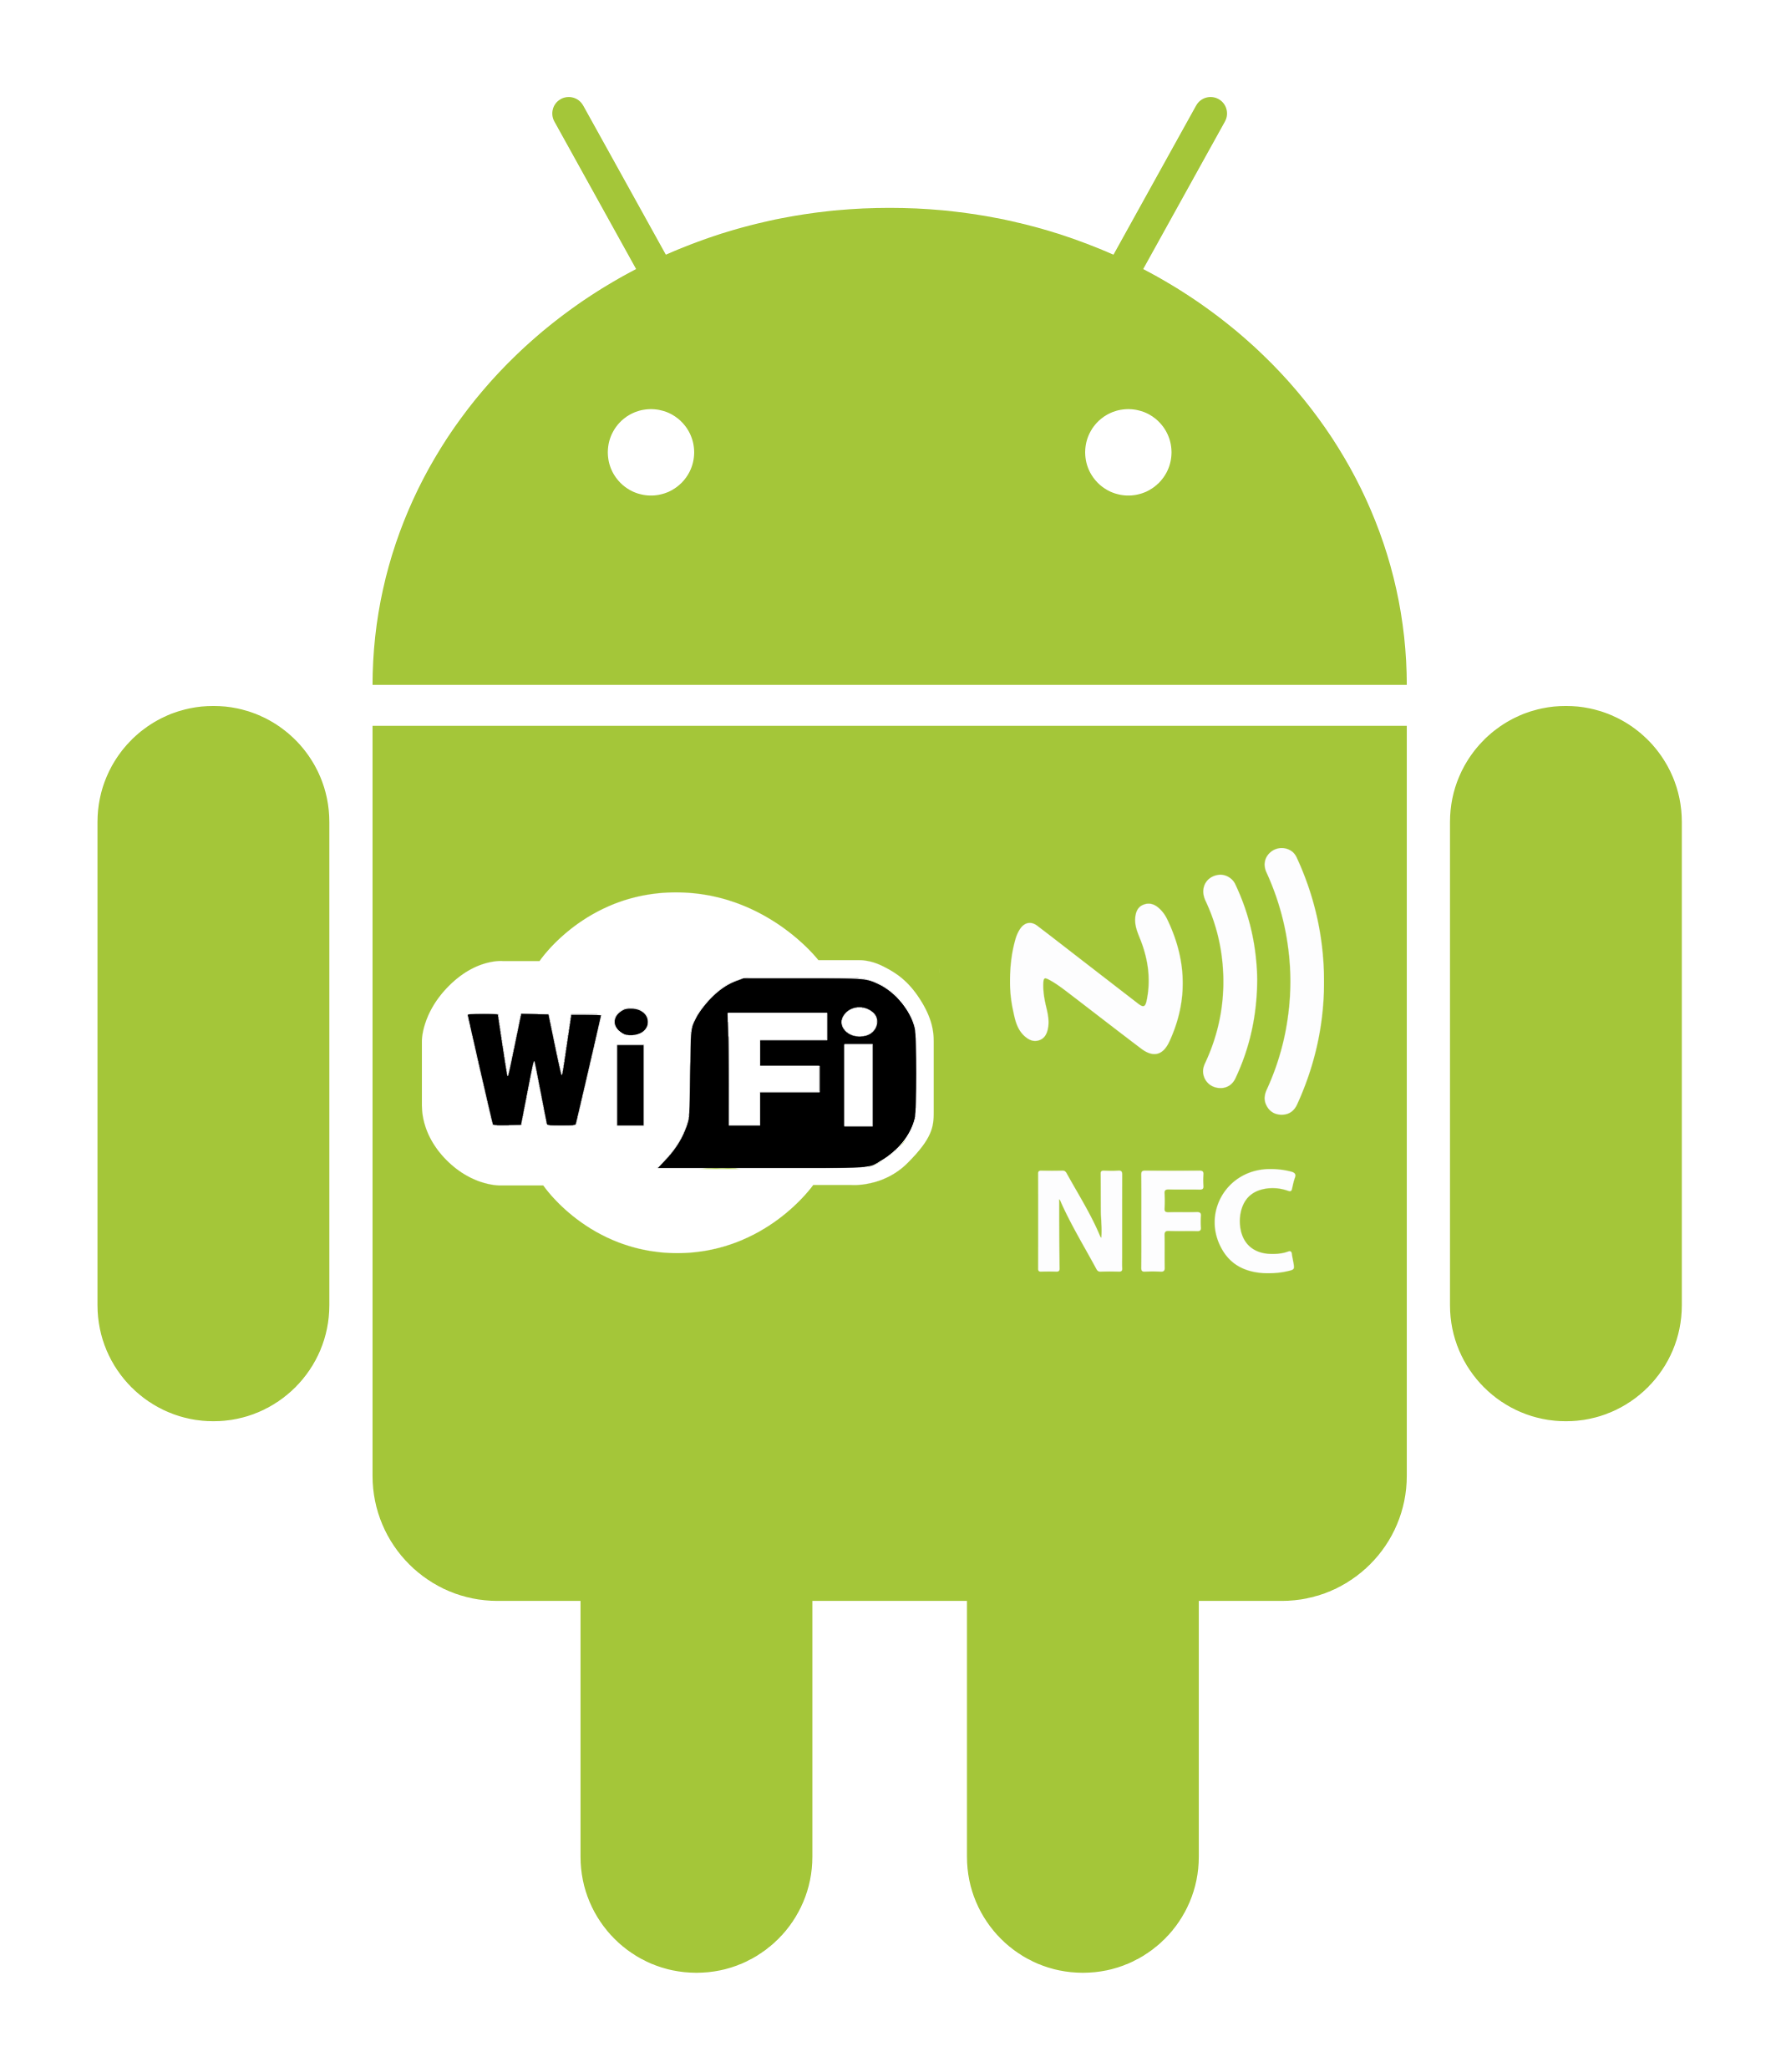 Android-NFC-WiFi